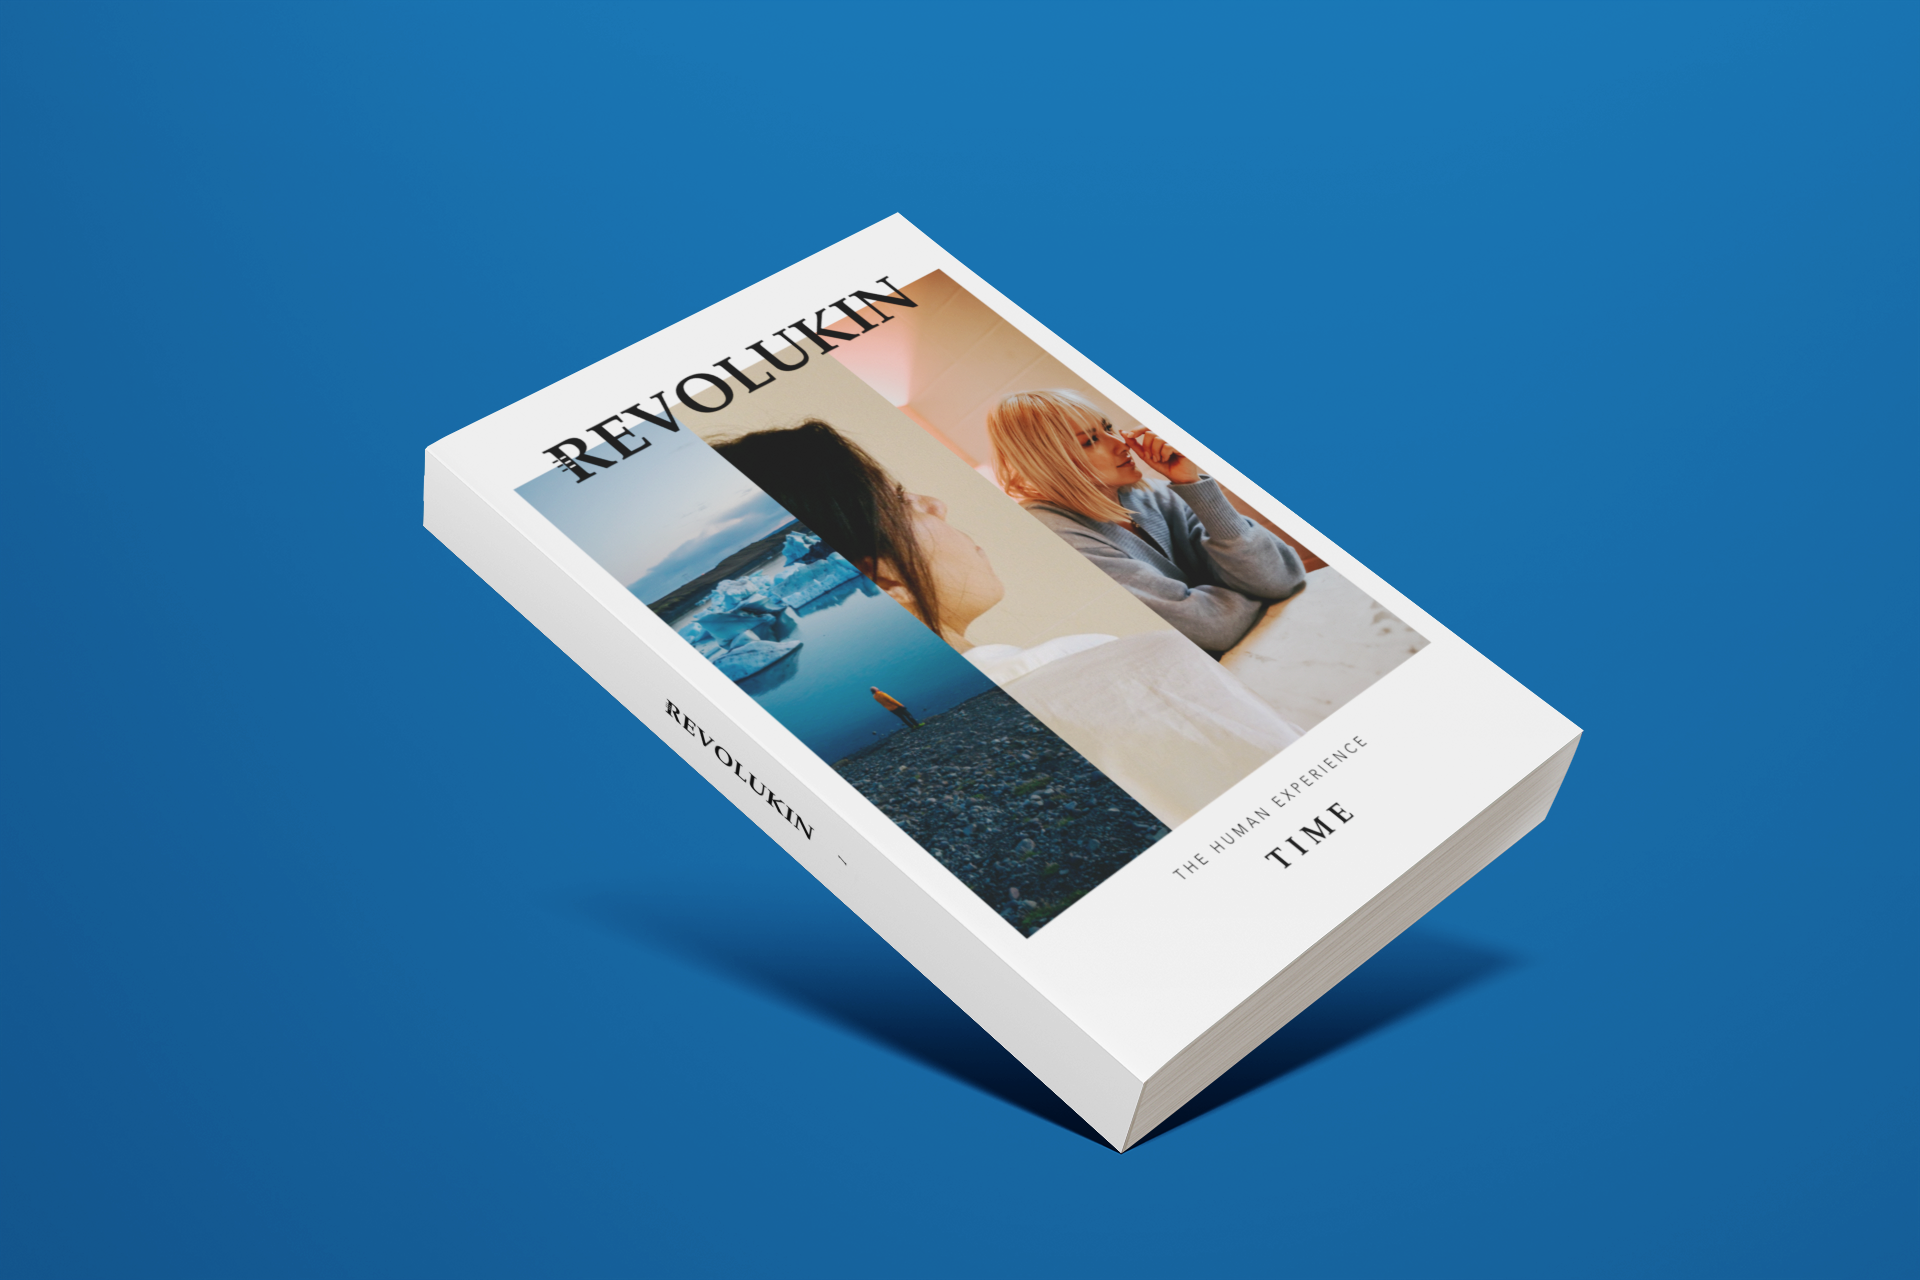 revolukin magazine, issue 1: TIME - Issue 1 explores the human concept of time, following the narratives of creators, artists, activists, researchers, and everyday humans.